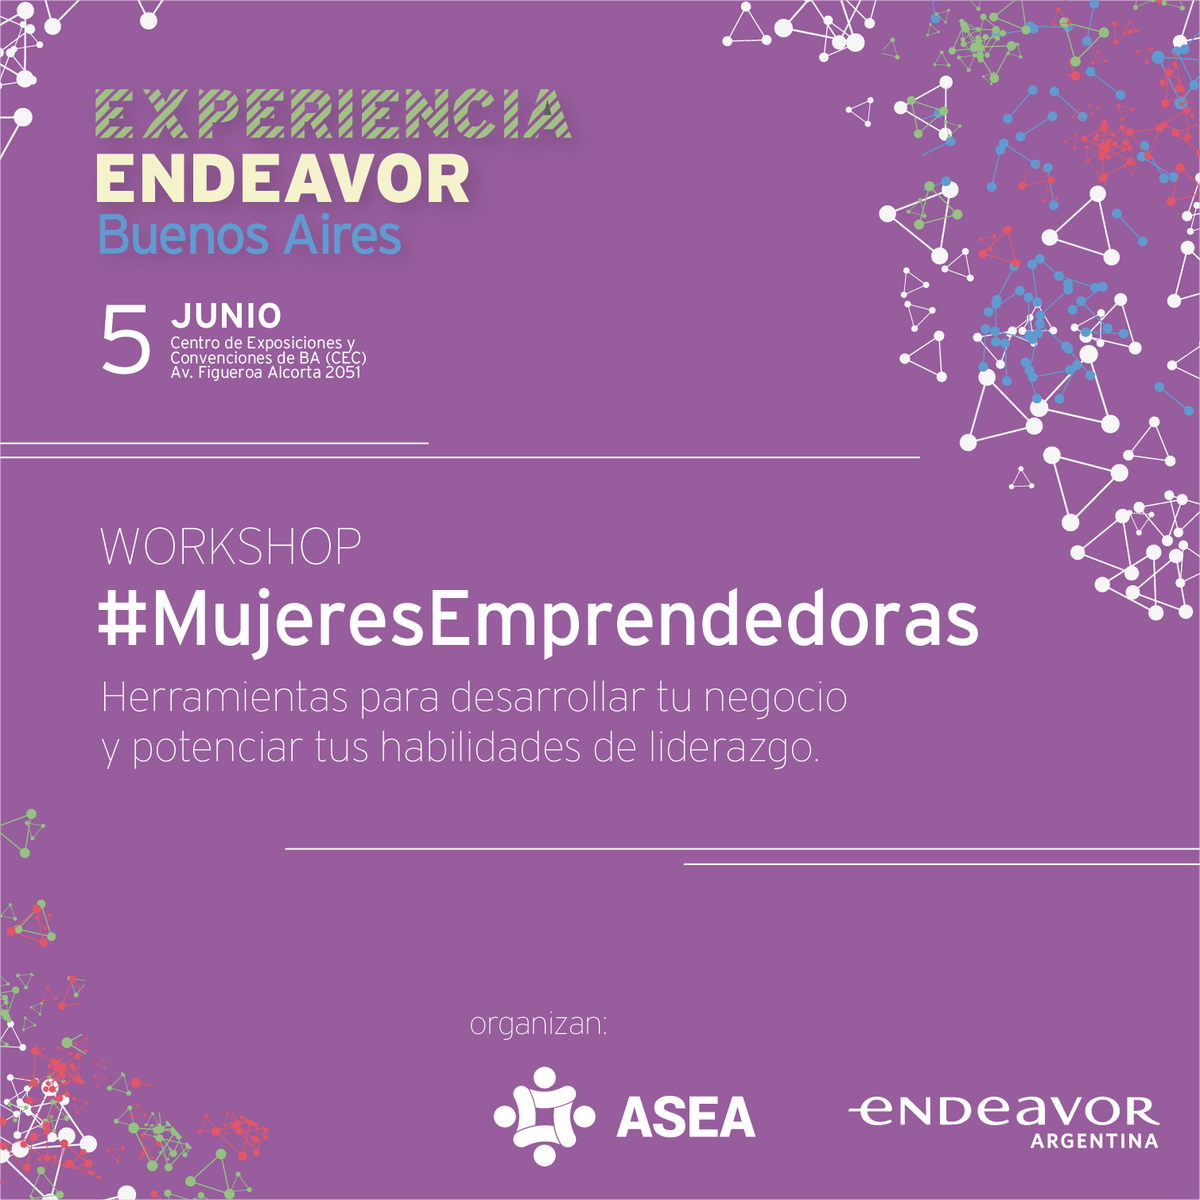 mujeresemprendedores-ASEA5mayo.png